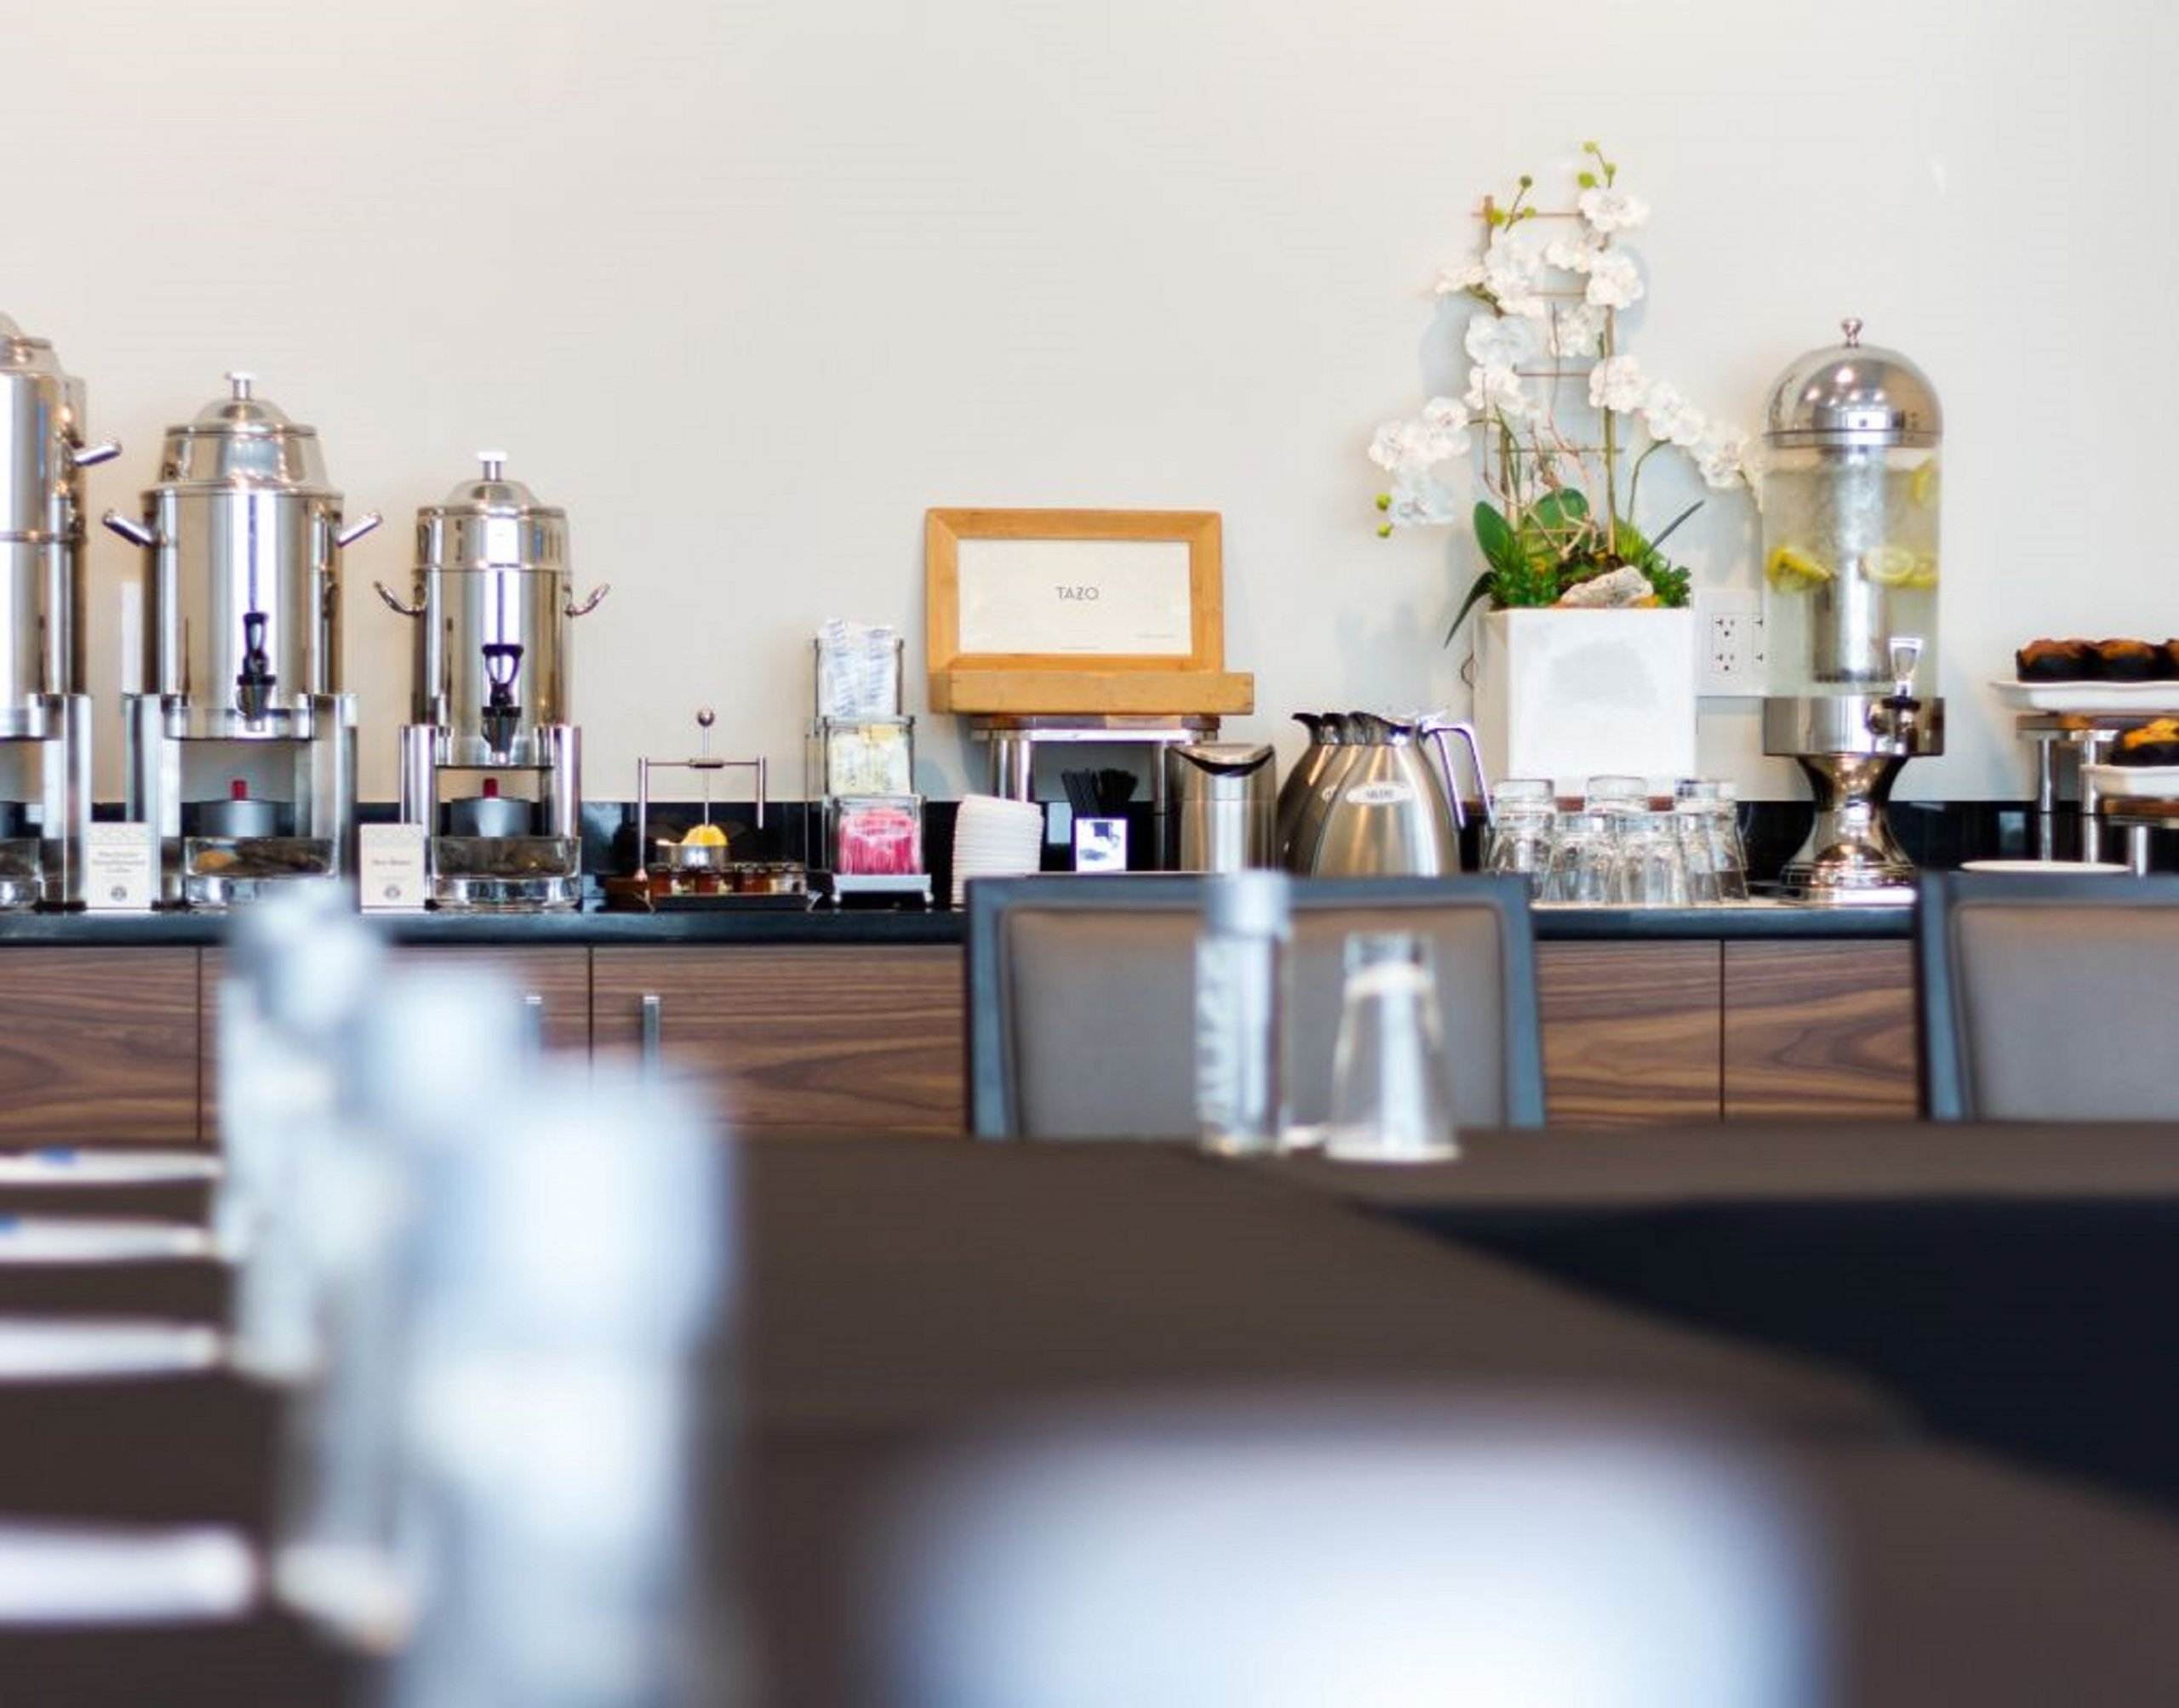 Table next to the wooden counter with coffee dispensers